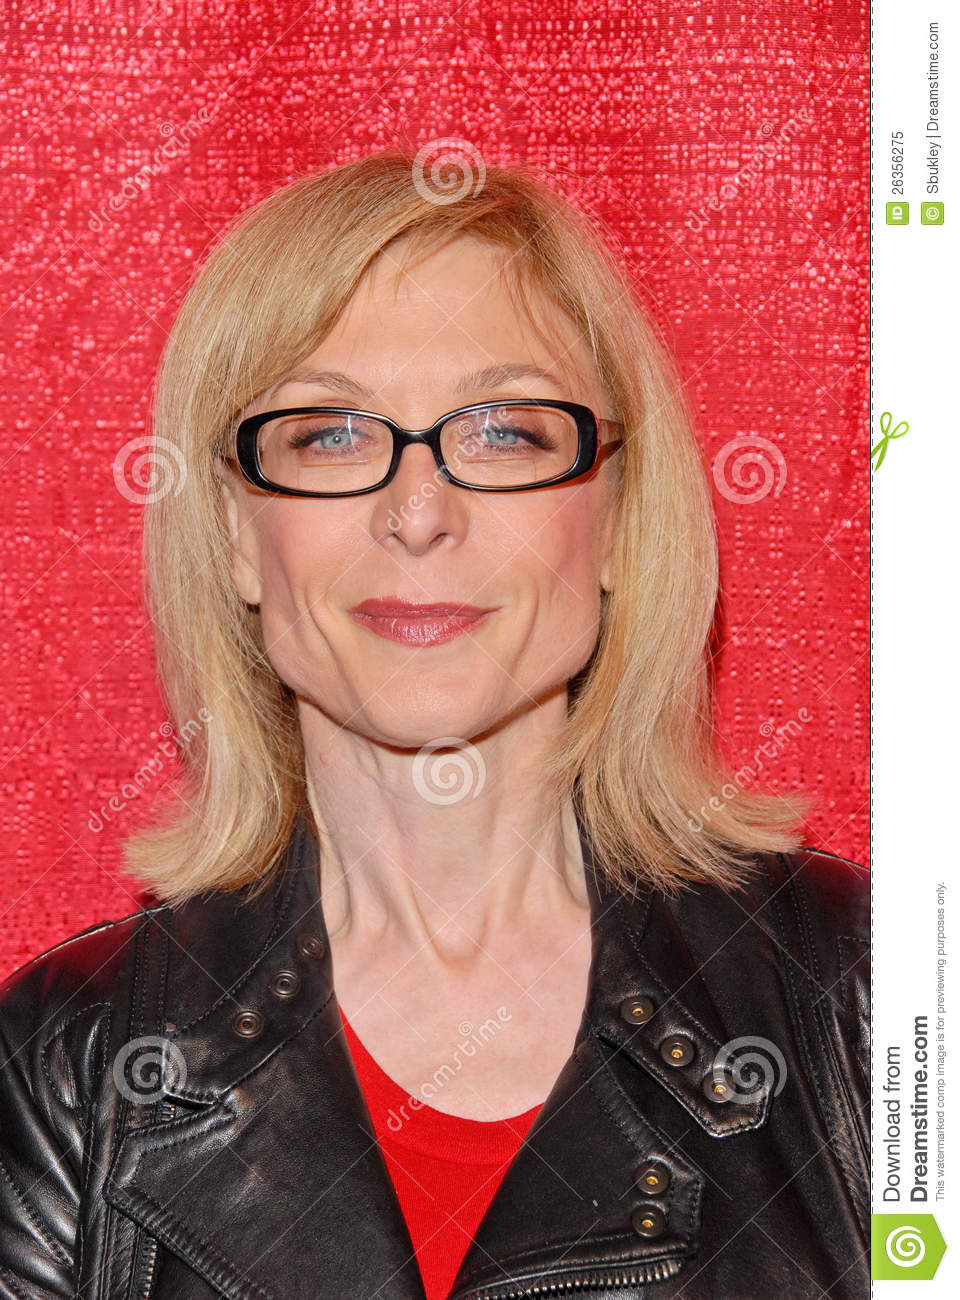 Photos Nina Hartley nudes (17 foto and video), Sexy, Fappening, Boobs, butt 2018